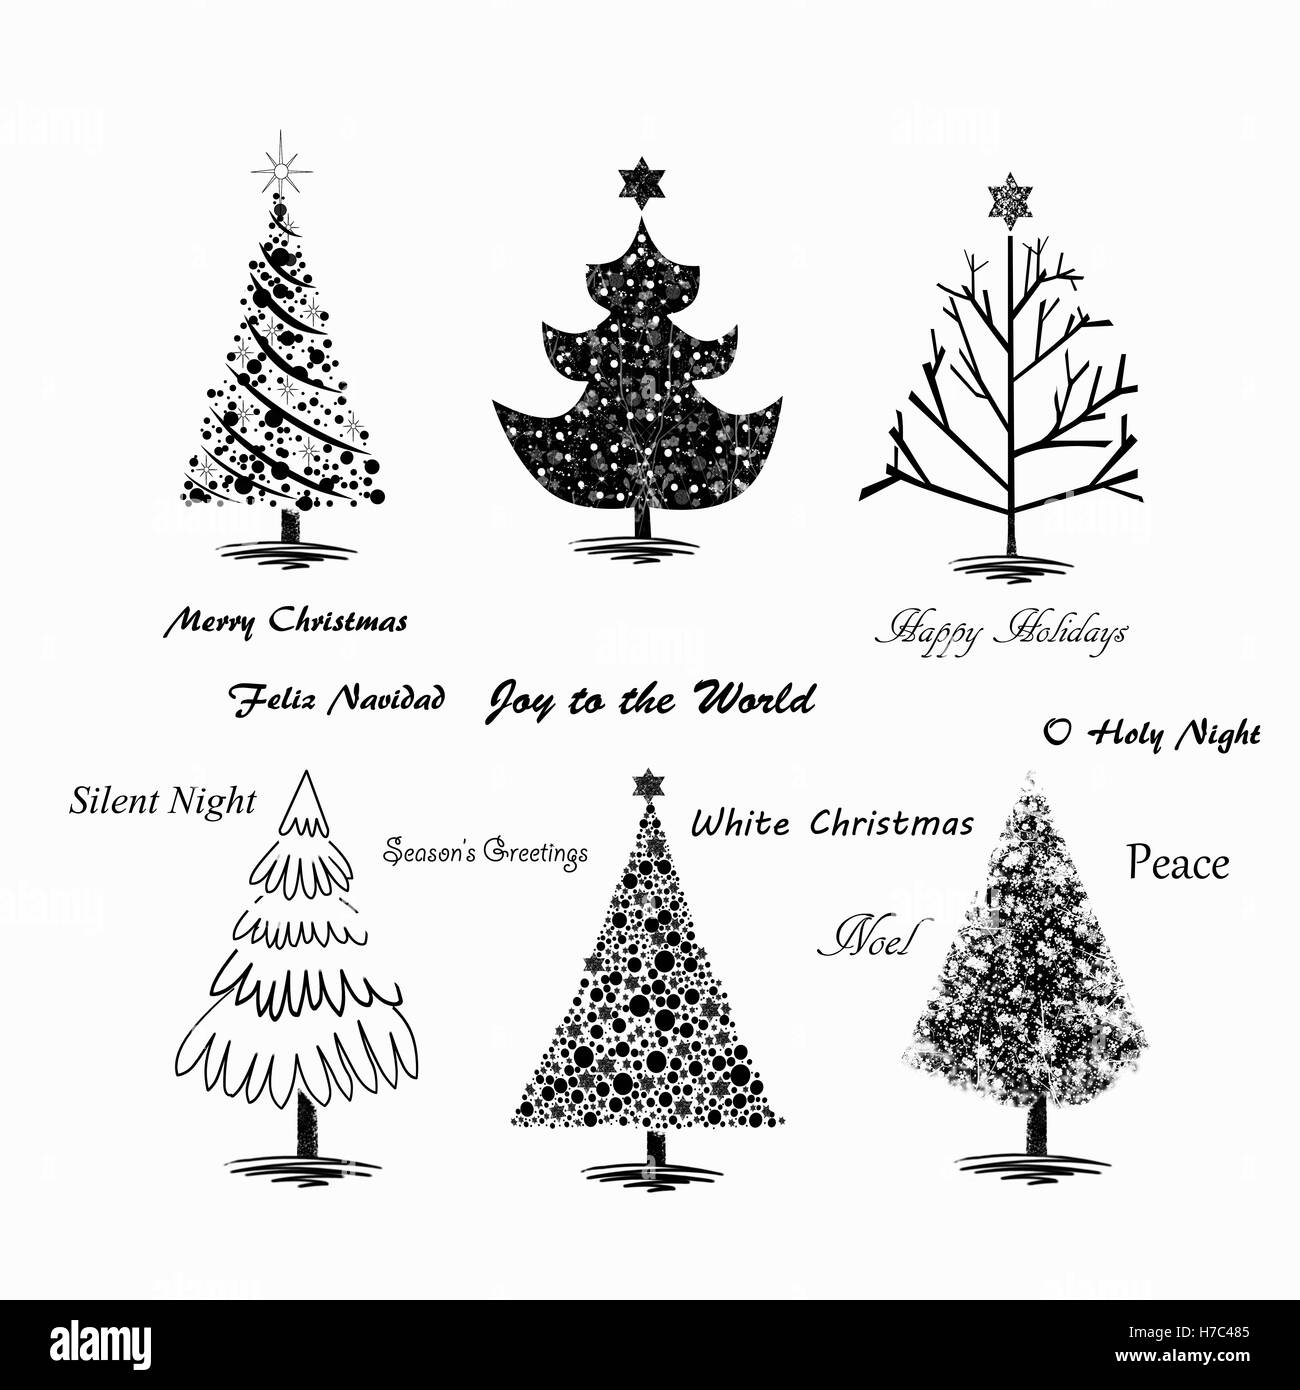 Hand Drawn Christmas Trees On White Background With Popular Holiday Quotes  Written Across The Illustration